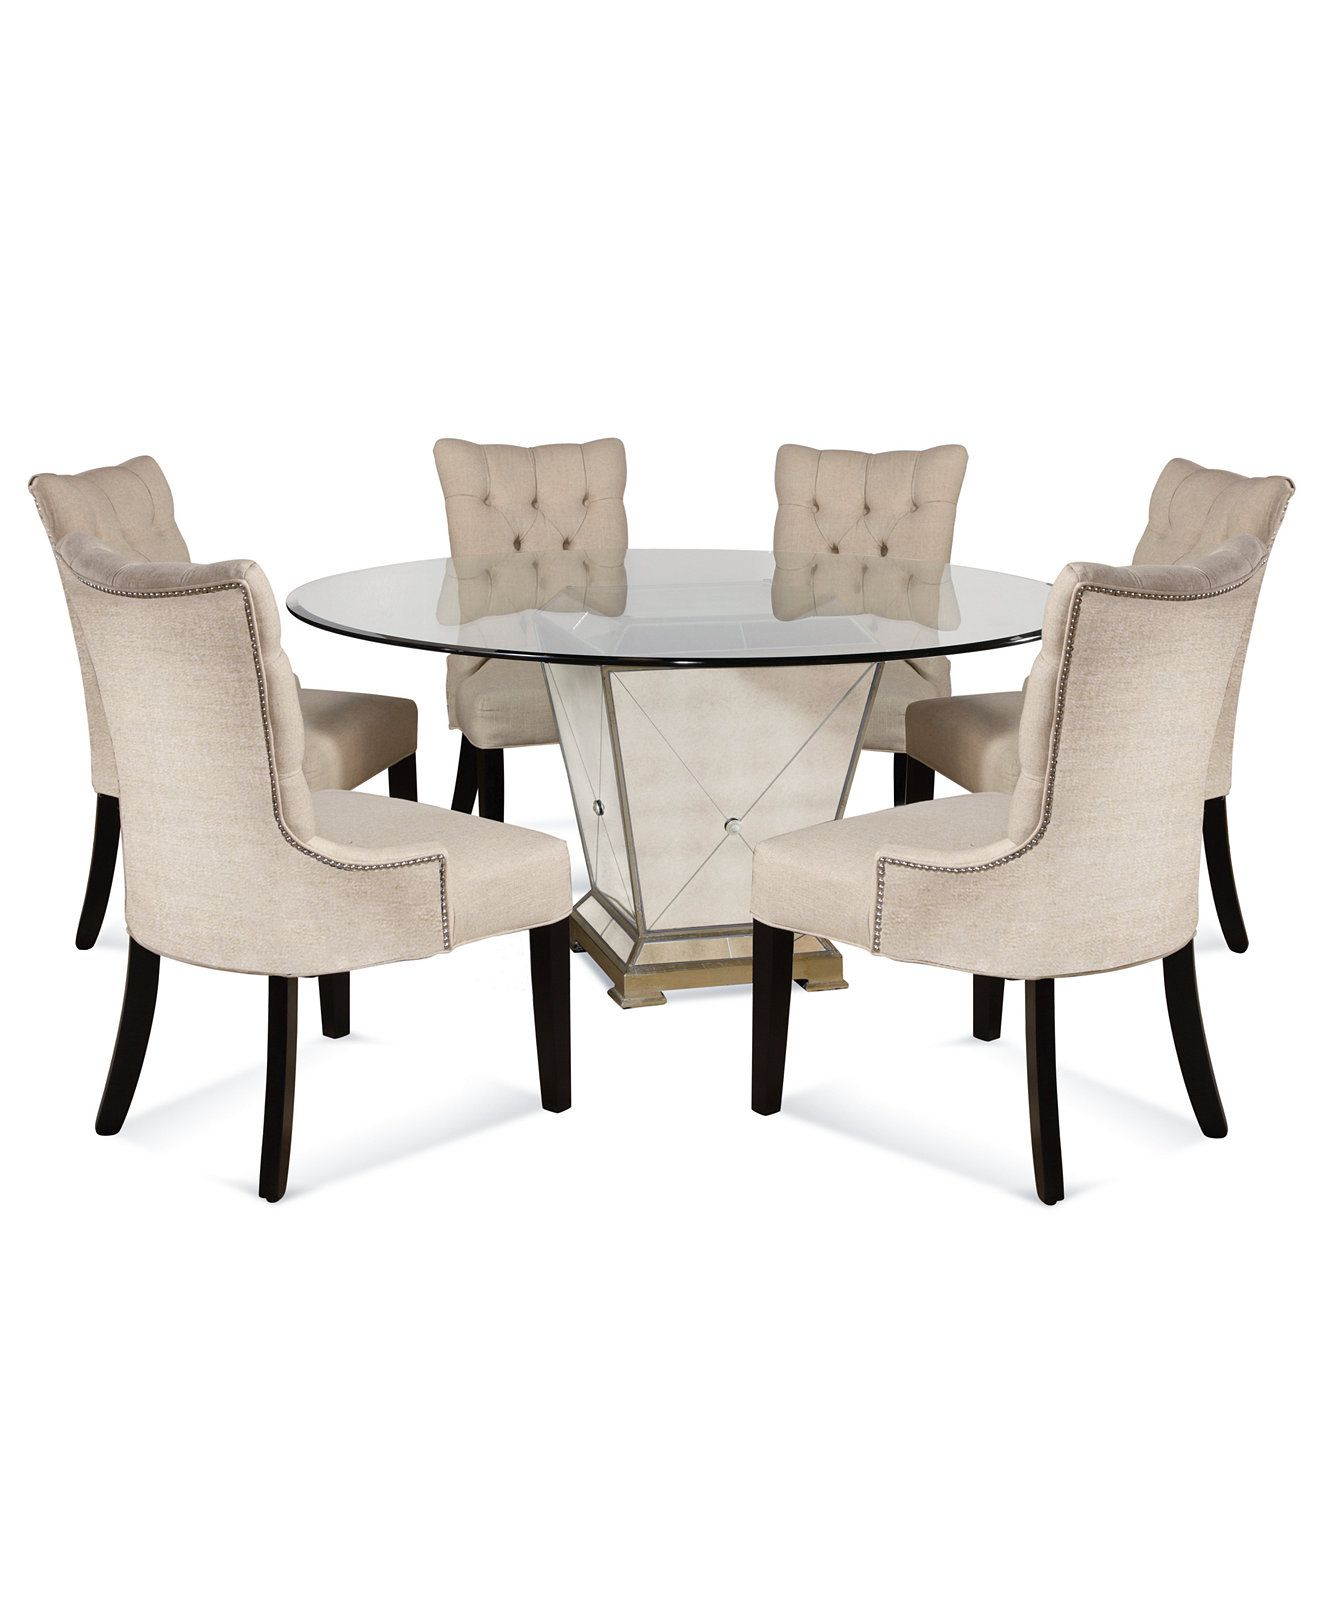 "Marais Dining Room Furniture, 7 Piece Set (60"" Mirrored"